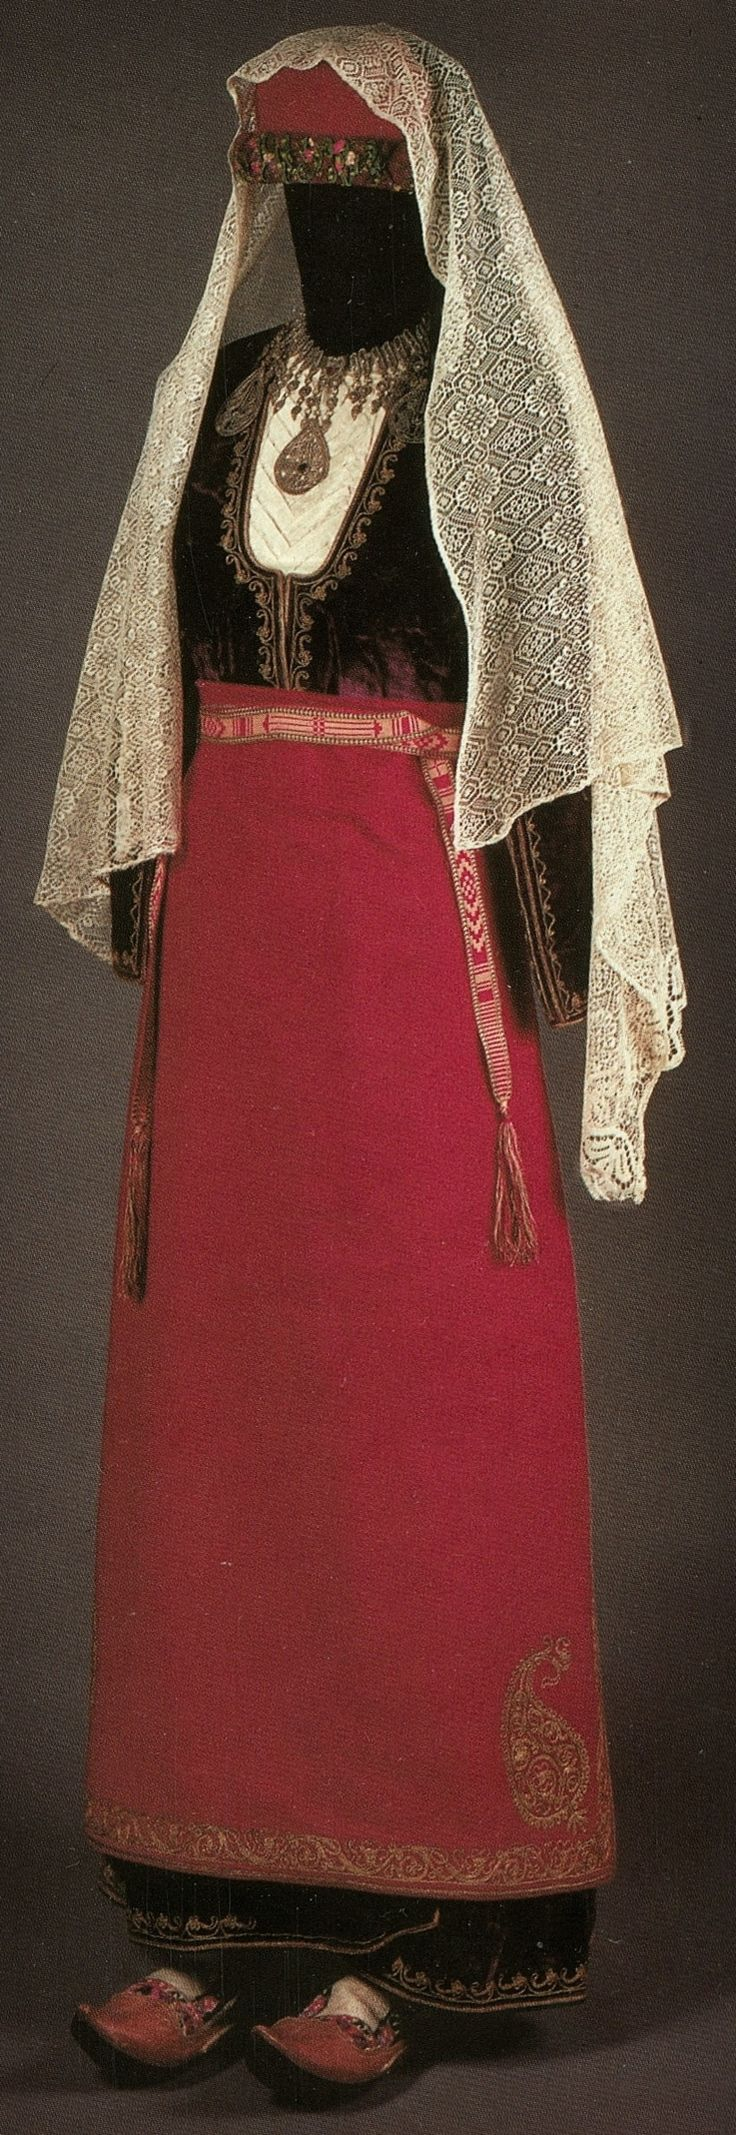 Traditional festive costume from the Olti/Oltu region (now in Northeastern Turkey). Armenian, late 19th century. (Private Collection, Russia). Picture from 'The Caucasian People' - catalog Exhibition Feb-June 2001 Hessenhuis/Antwerpen.